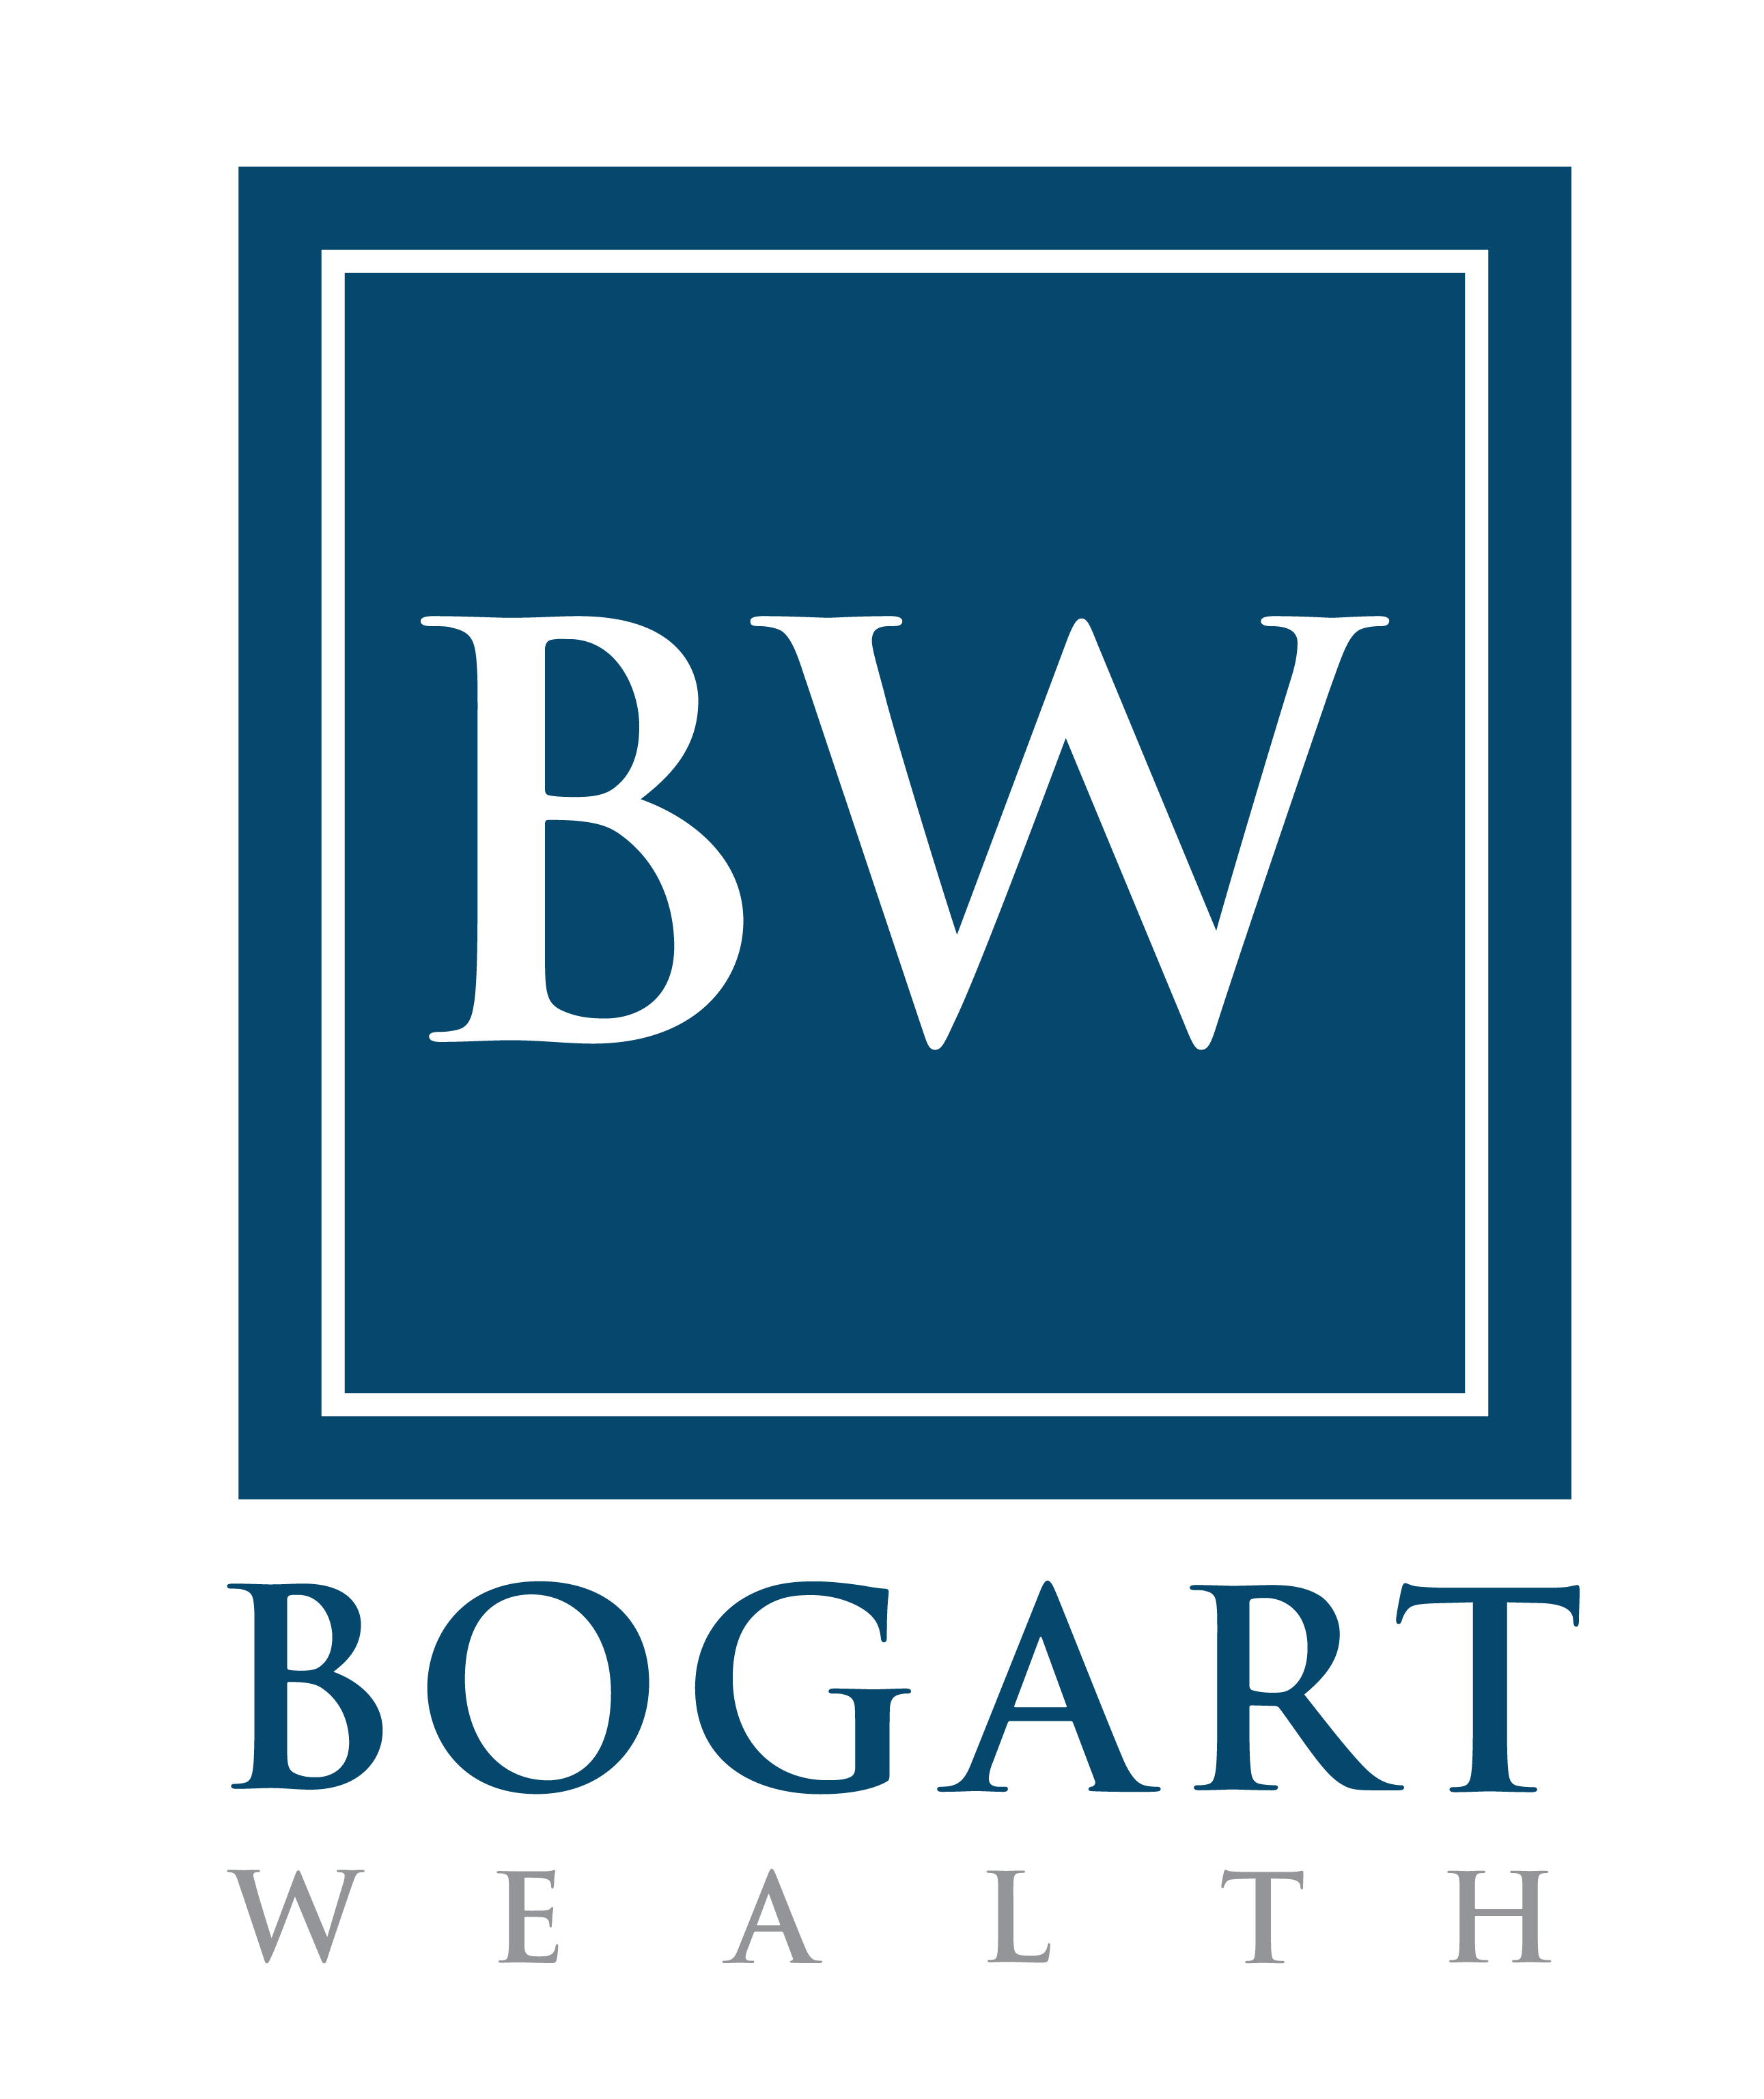 Bogart Wealth - The Woodlands, TX 77380 - (832)240-3307 | ShowMeLocal.com